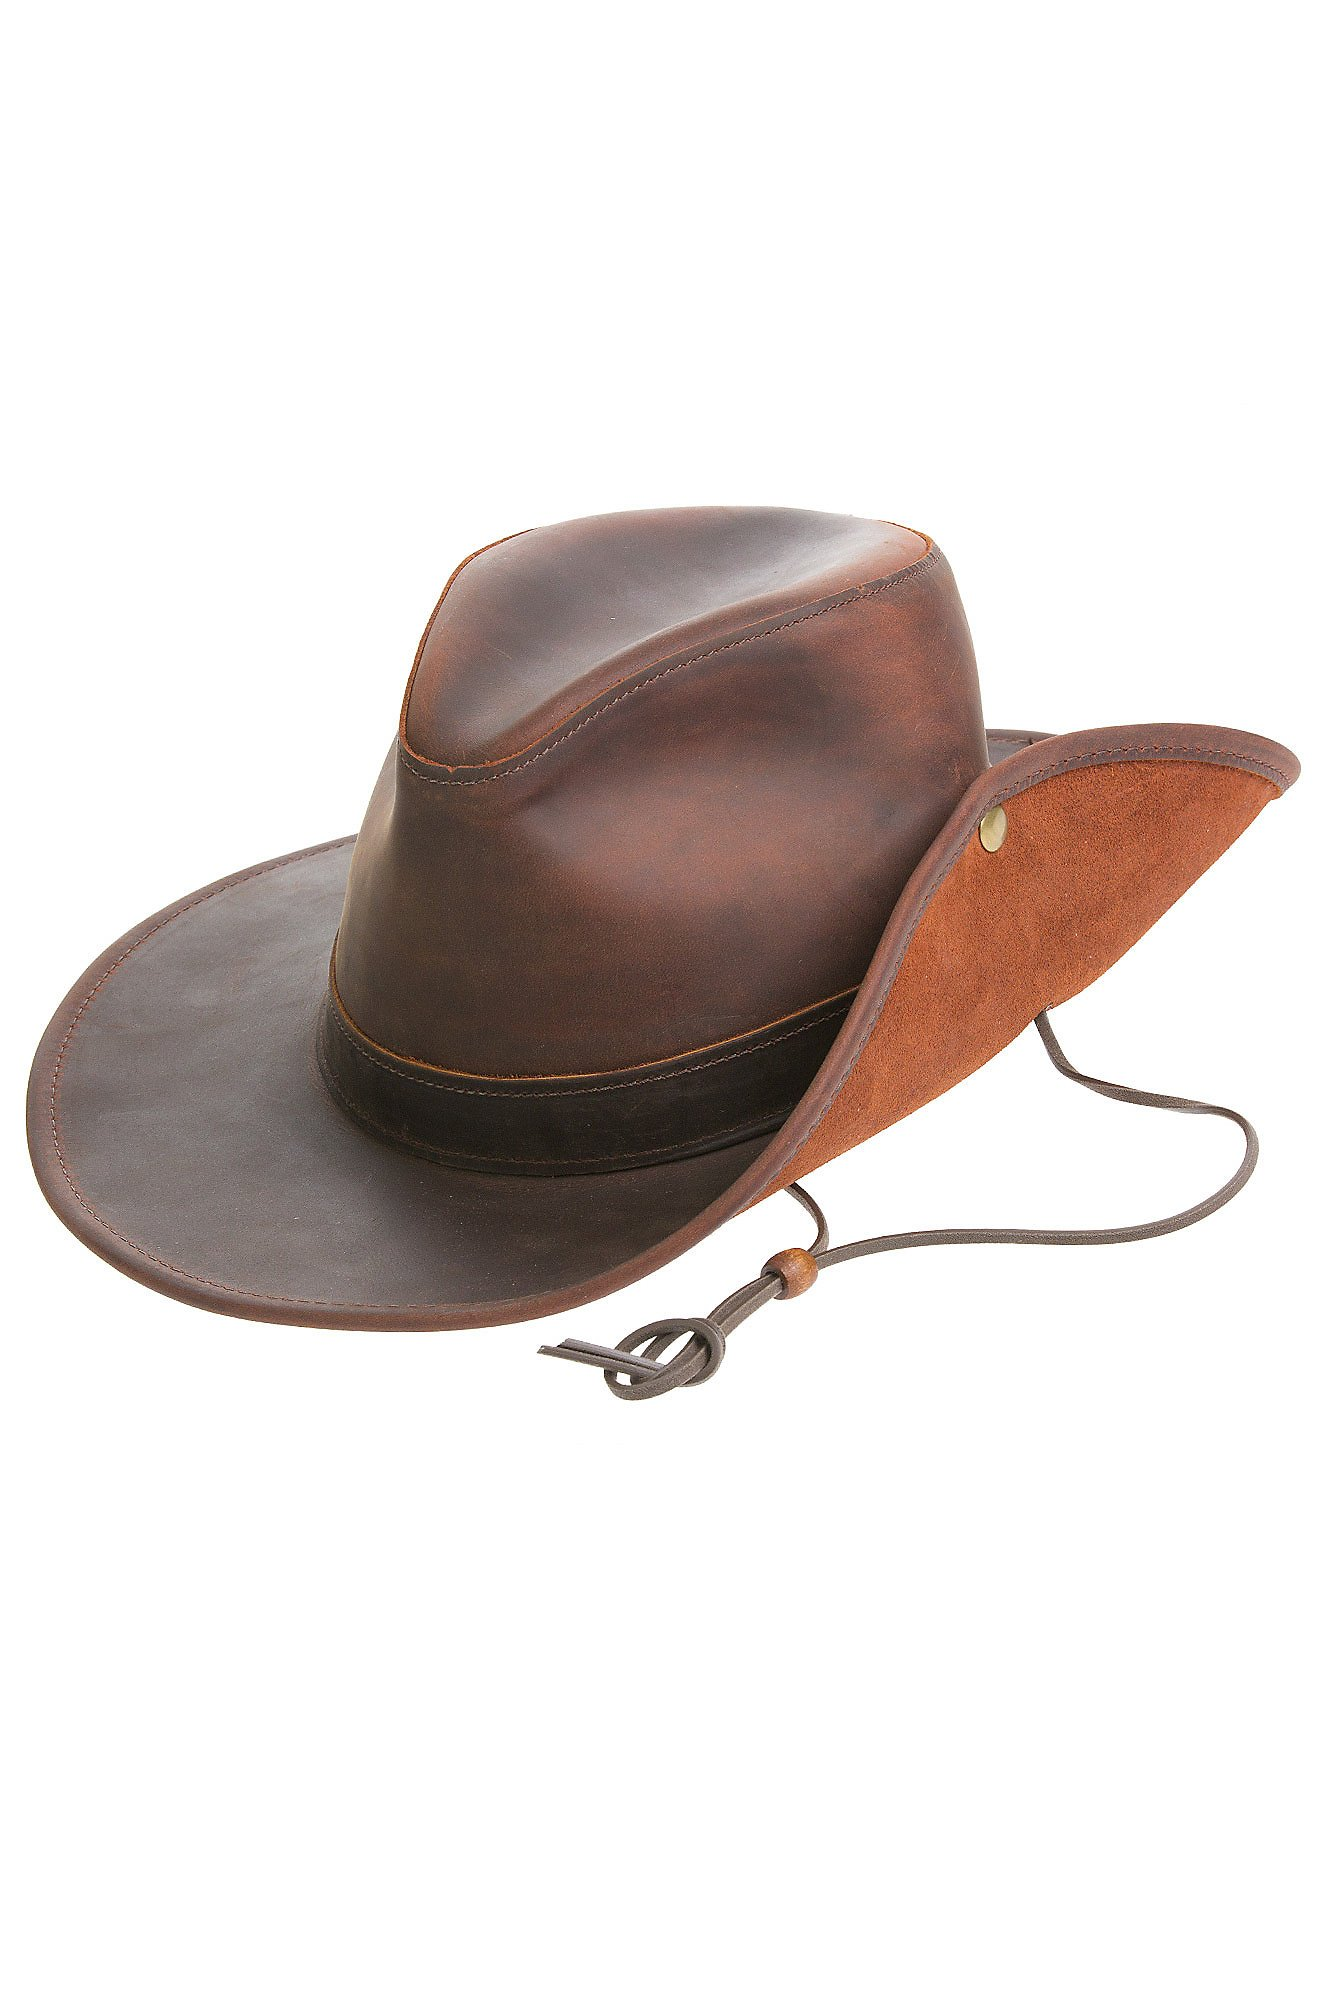 Overland Sheepskin Co Aussie Distressed Leather Outback Hat